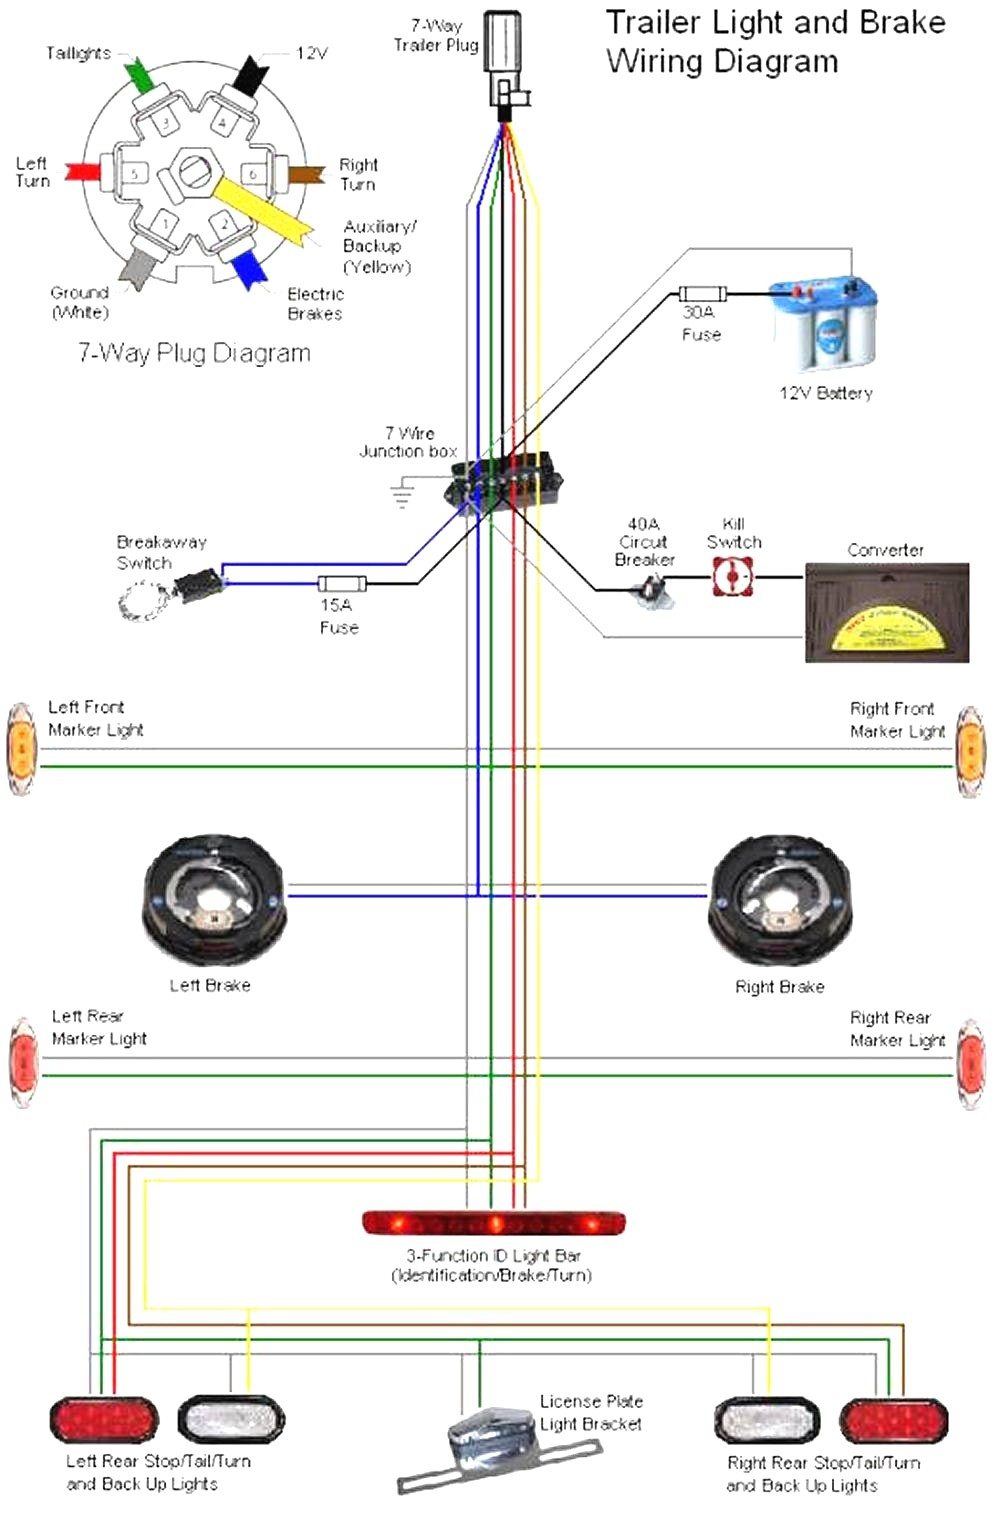 How To Wire Electric Trailer Brakes Sesapro Noticeable Brake Wiring Diagram With